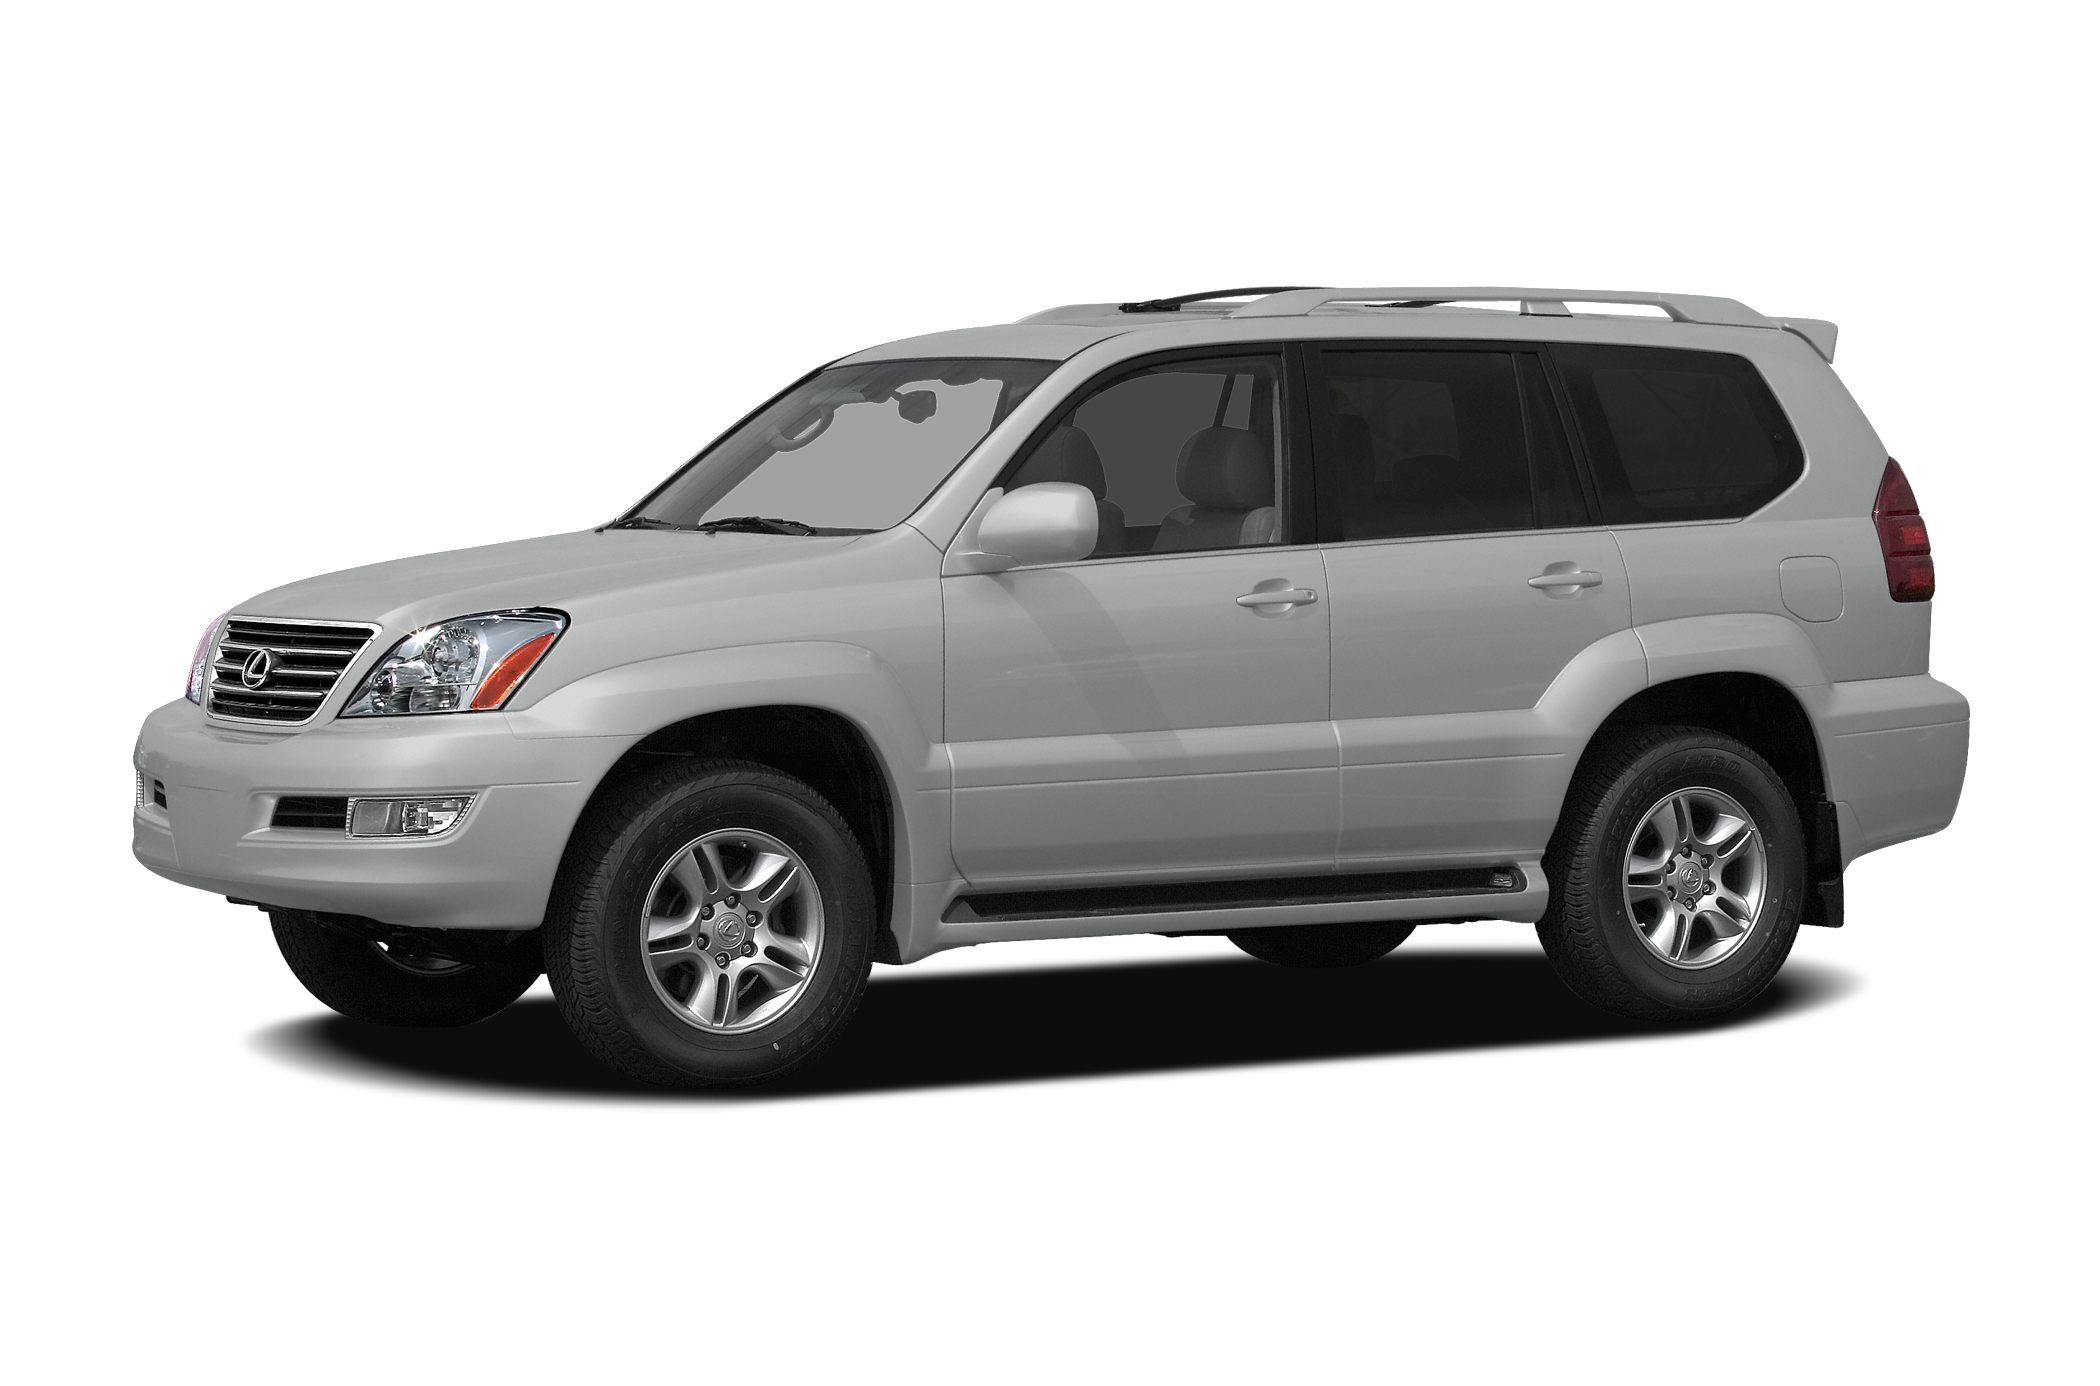 2008 Lexus GX 470 SUV for sale in Richland for $24,995 with 91,261 miles